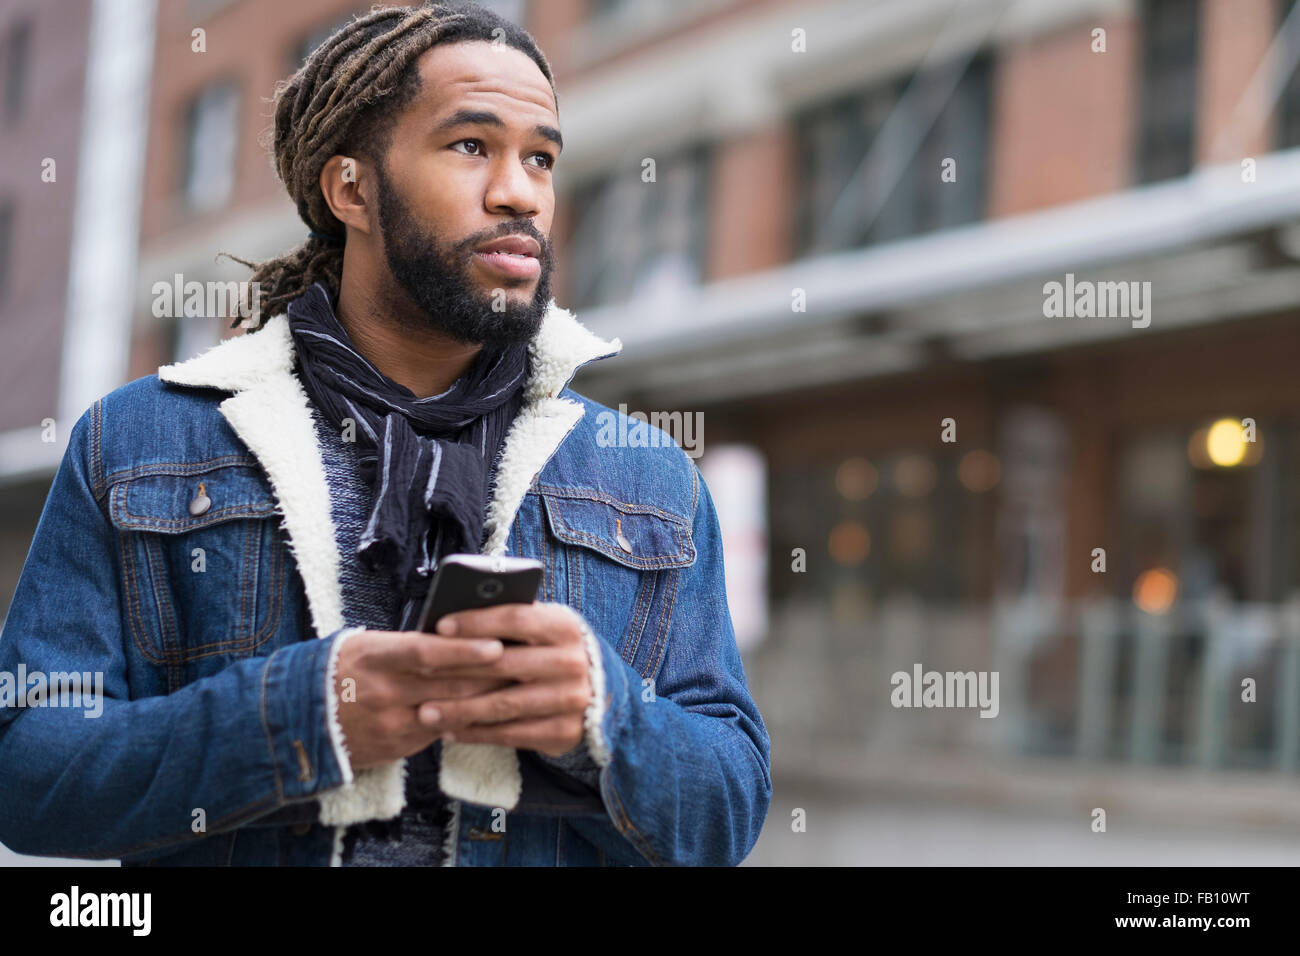 Serious man with dreadlocks holding smart phone in street Stock Photo